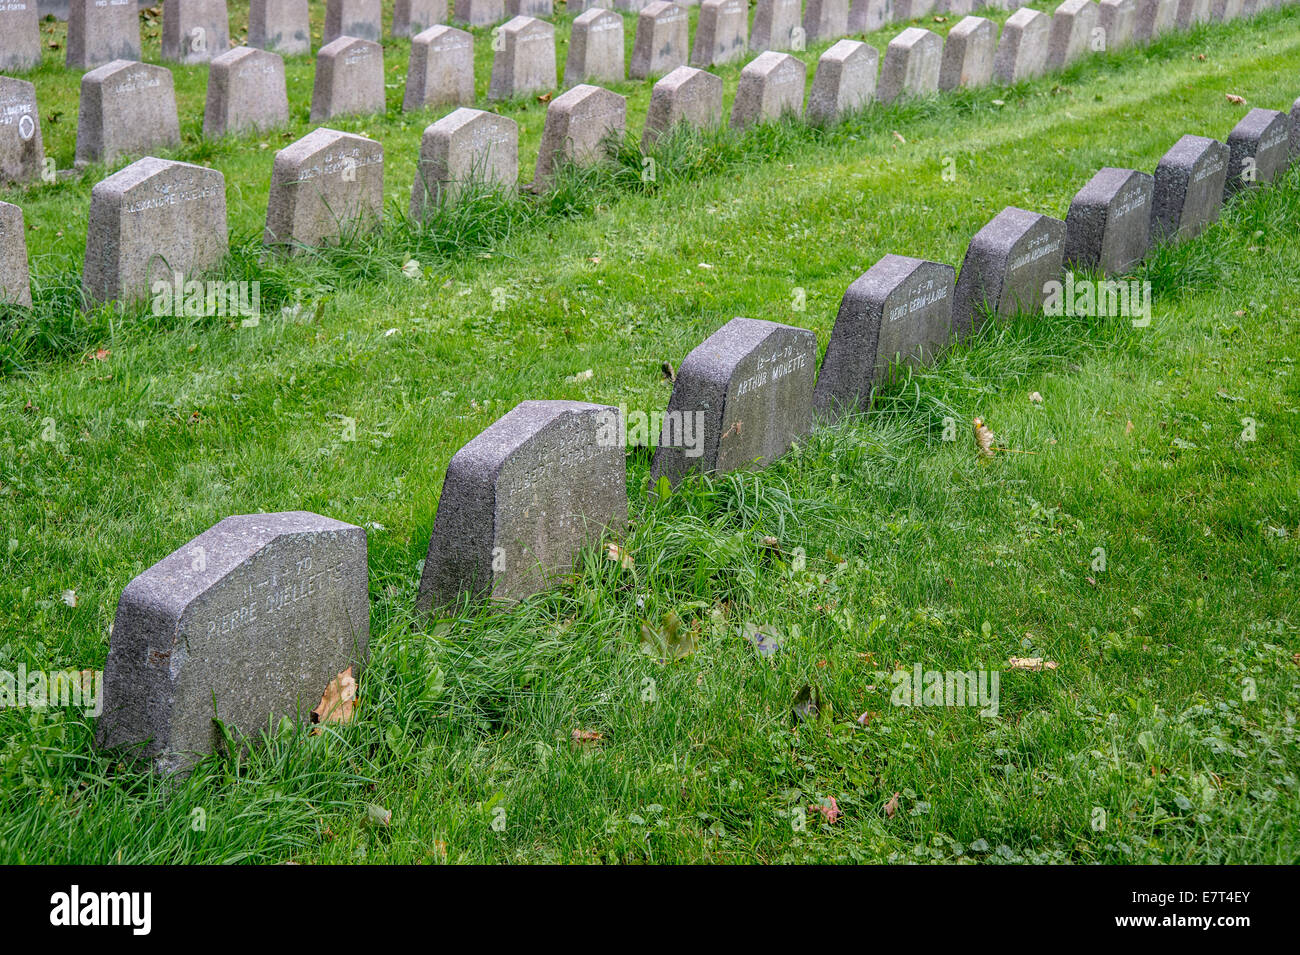 Rows of tombstones in a canadian cemetary - Stock Image